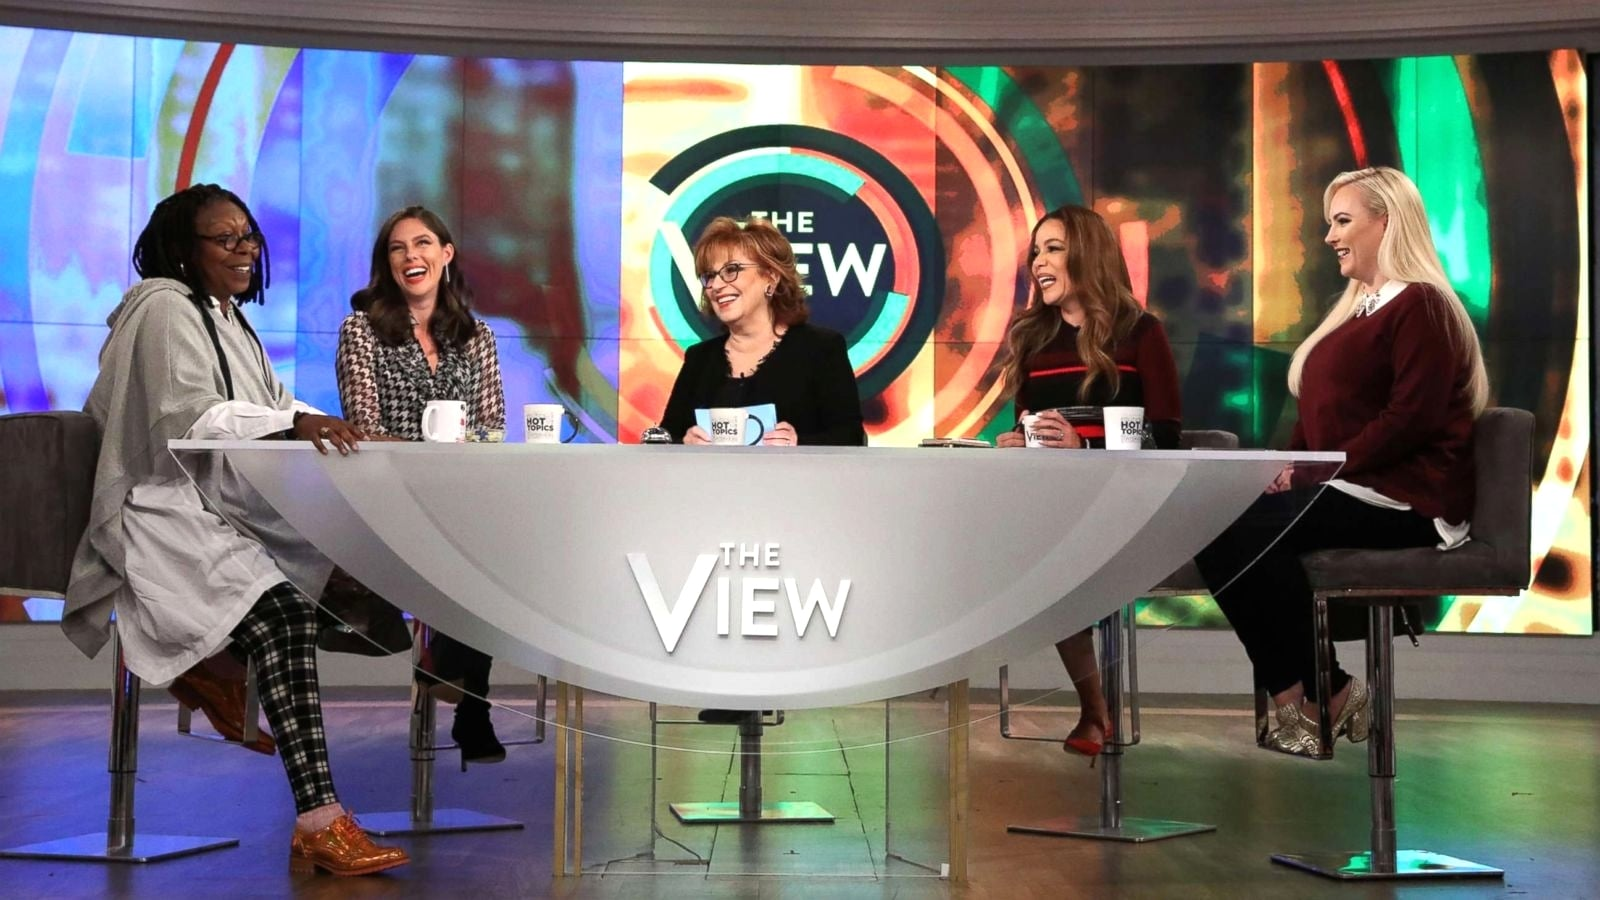 The View - Season 8 Episode 256 : Season 8, Episode 256